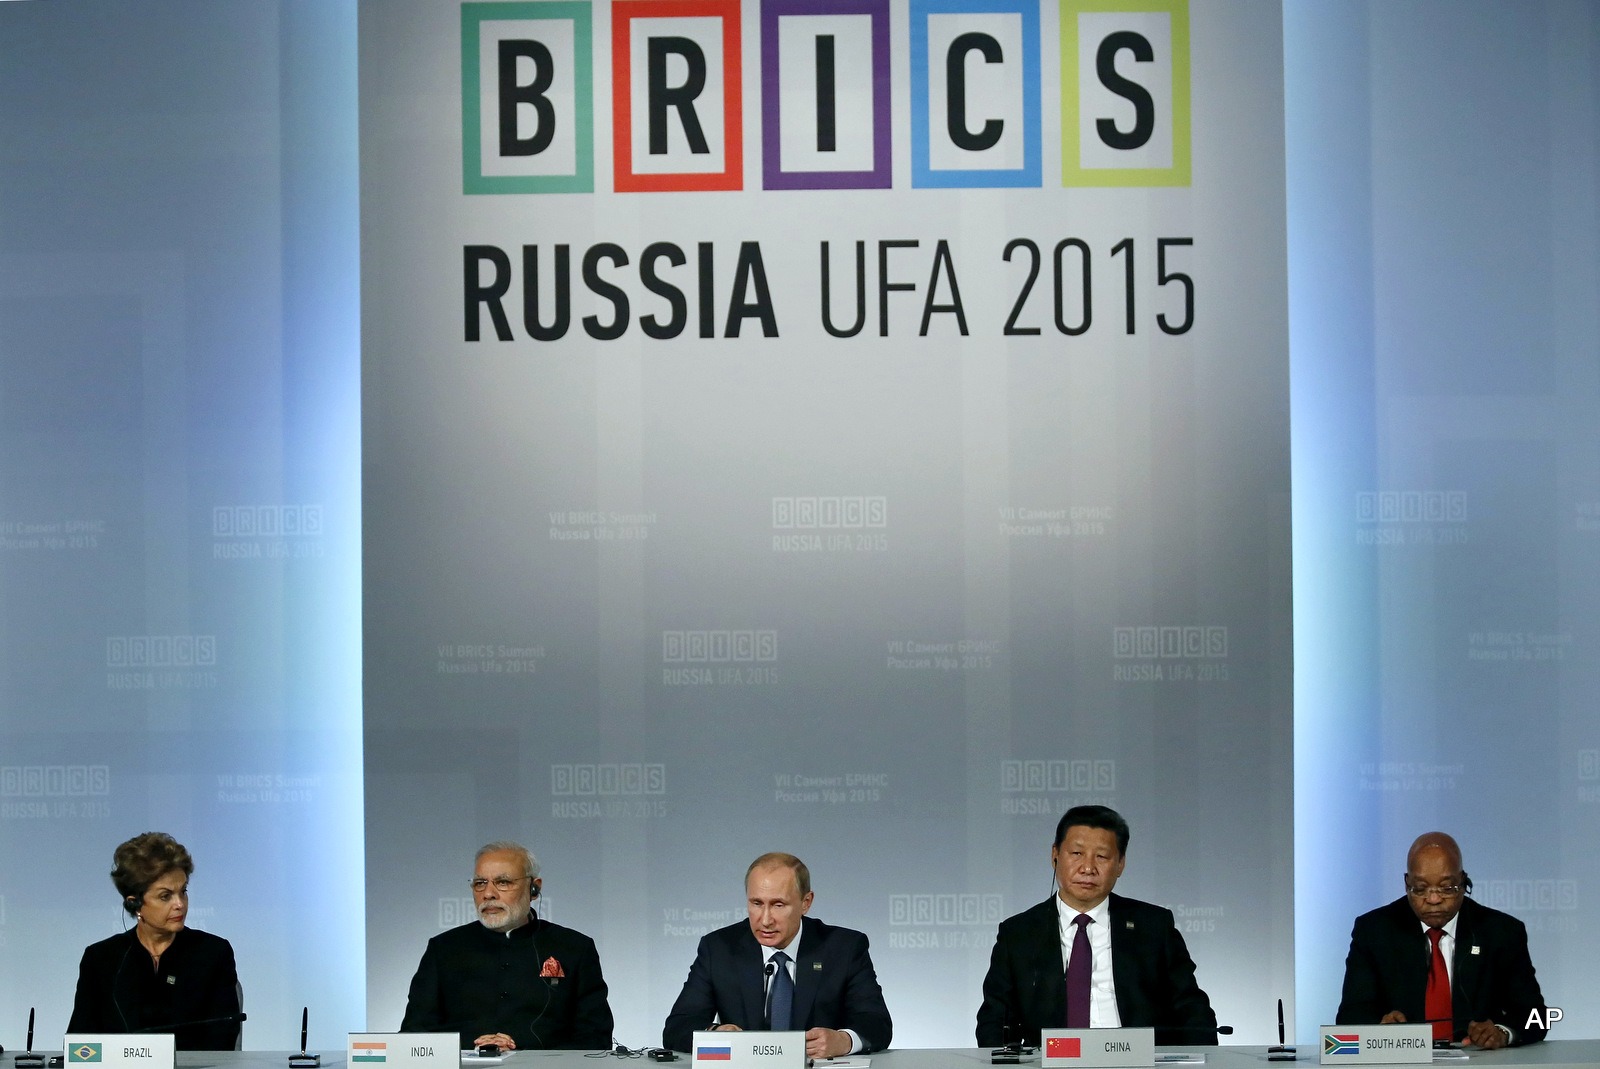 From left: Brazil's President Dilma Rousseff , Indian Prime Minister Narendra Modi, President of Russia Vladimir Putin, President of China Xi Jinping and South African President Jacob Zuma sit during a signing ceremony at the BRICS Summit in Ufa, Russia, Thursday, July 9, 2015. Ufa is hosting BRICS (Brazil, Russia, India, China and South Africa) and SCO (Shanghai Cooperation Organisation) summits. (Sergei Ilnitsky/Pool photo via AP)